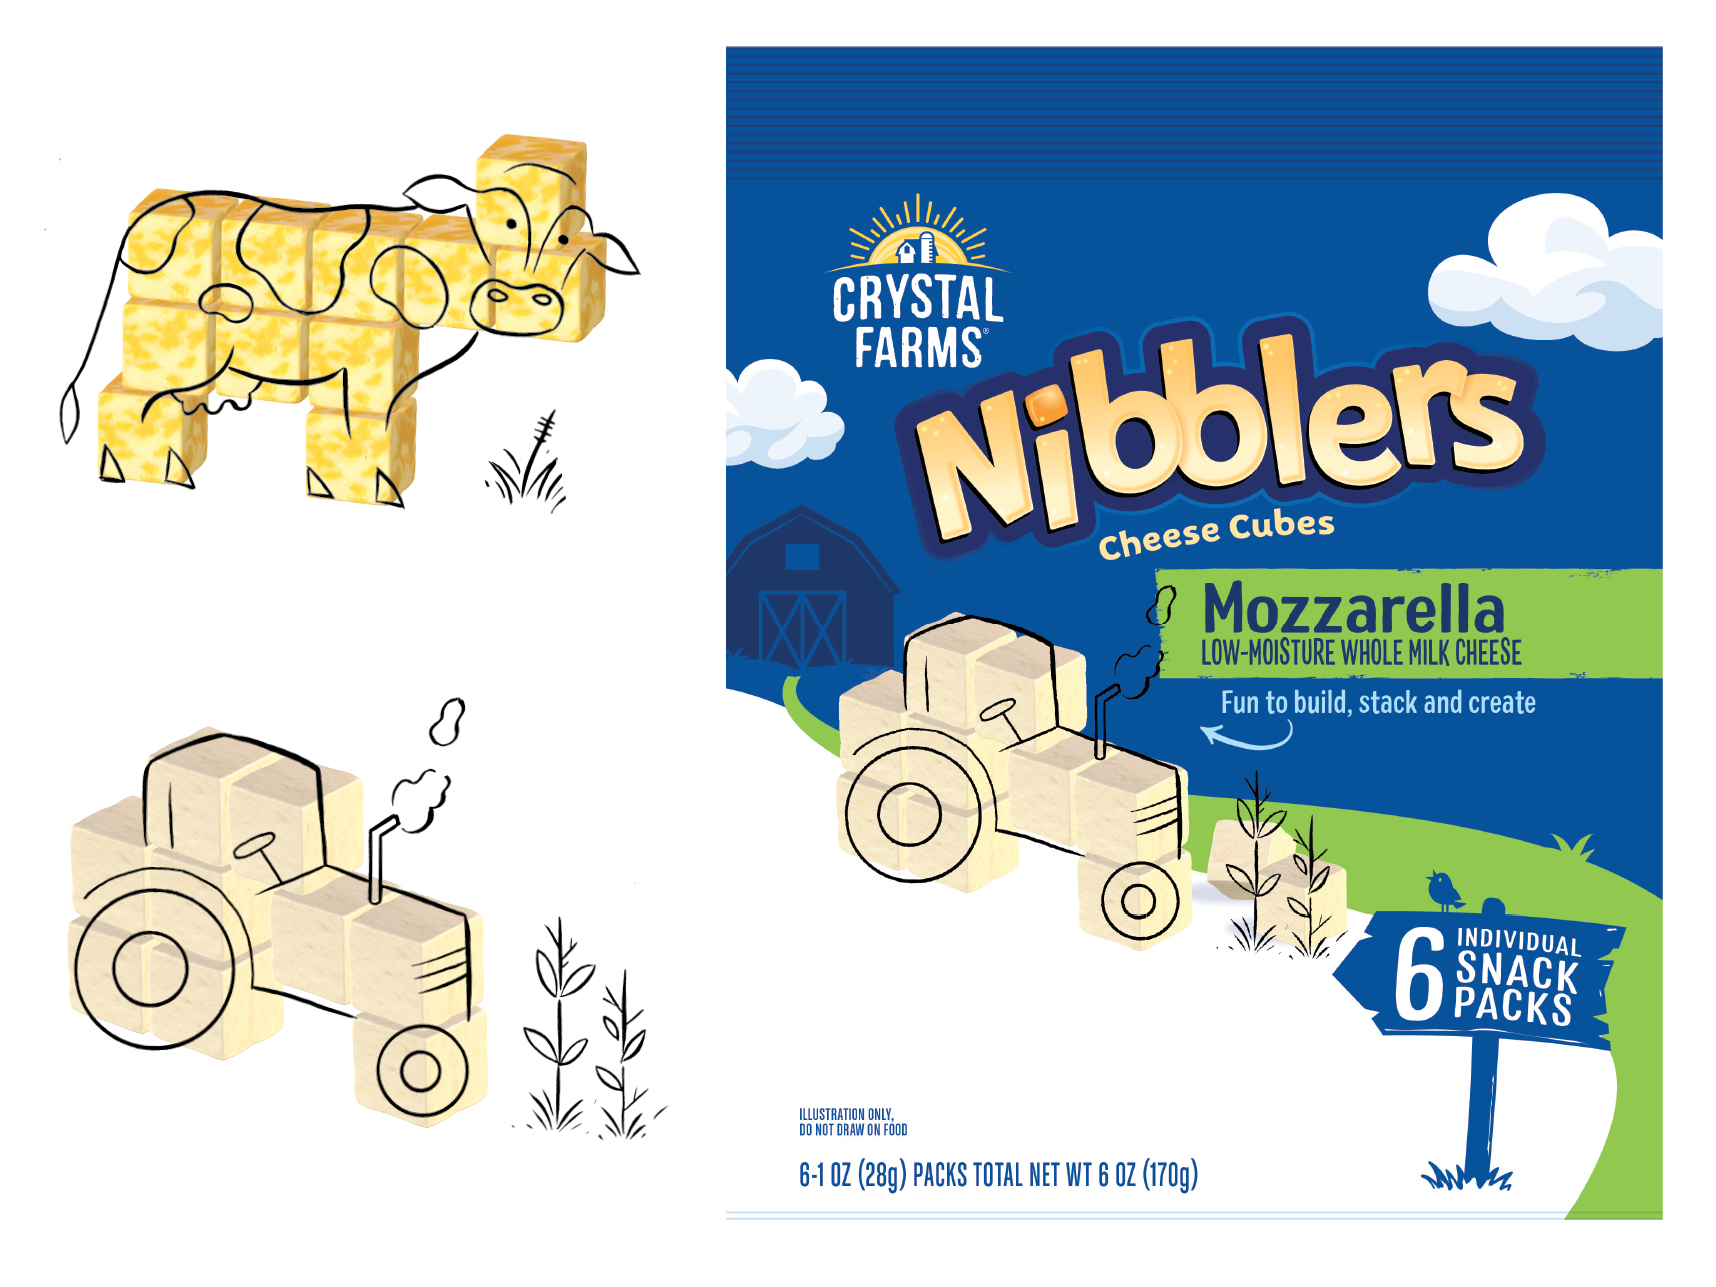 Cow & Tractor Illustrations